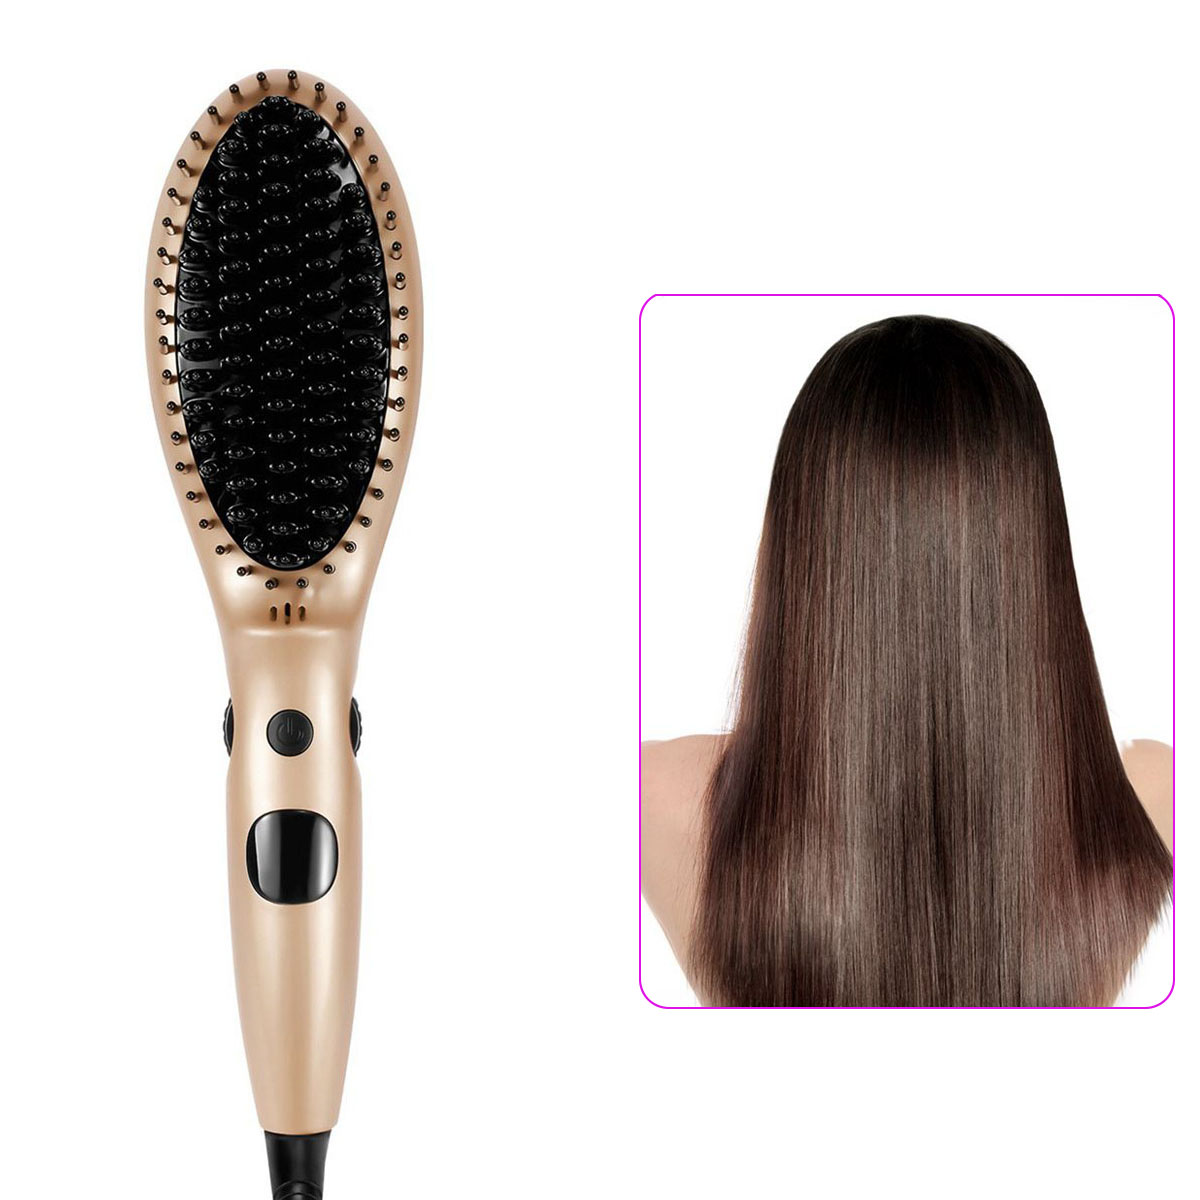 Electric Hair Straightener Comb Auto Lock Temperature Heating Hair Care Styling Straightening Brush With Accessories HJL